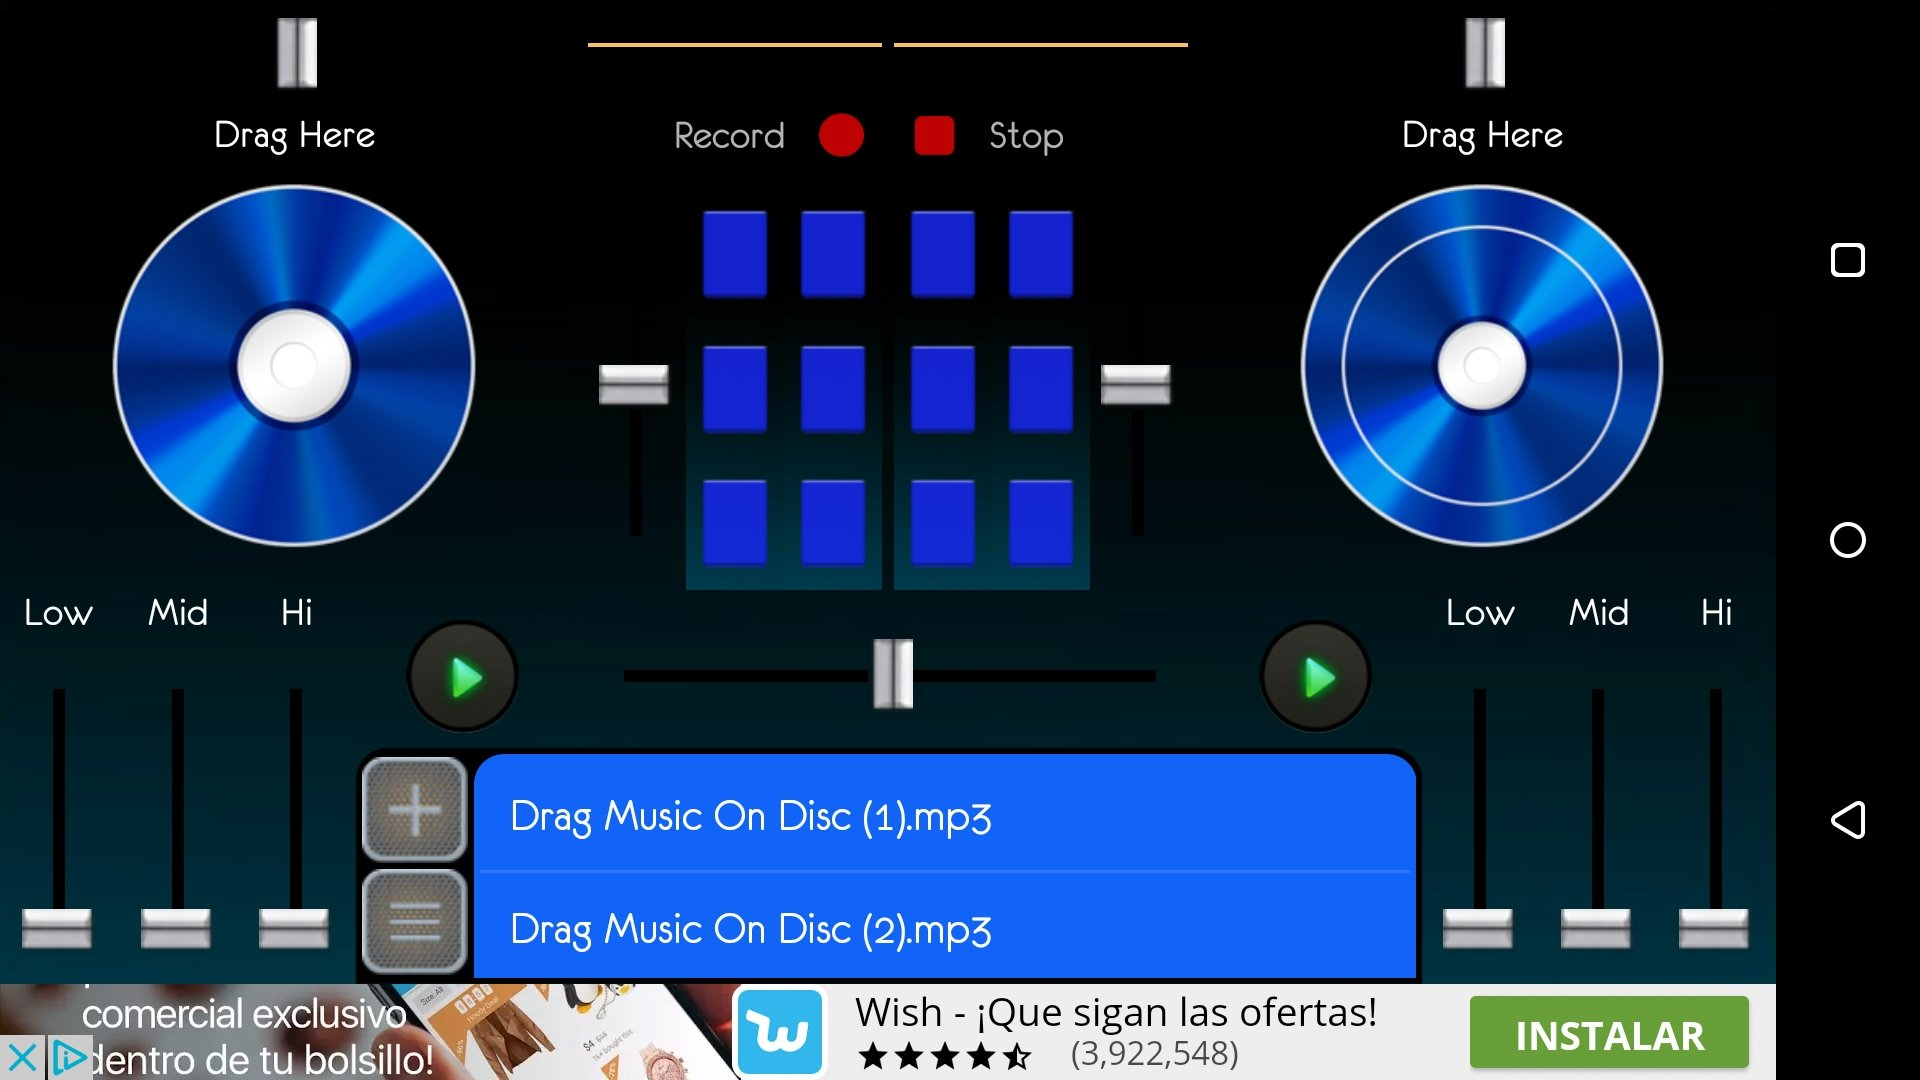 Virtual DJ Mixer Pro 1 0 - Download for Android APK Free